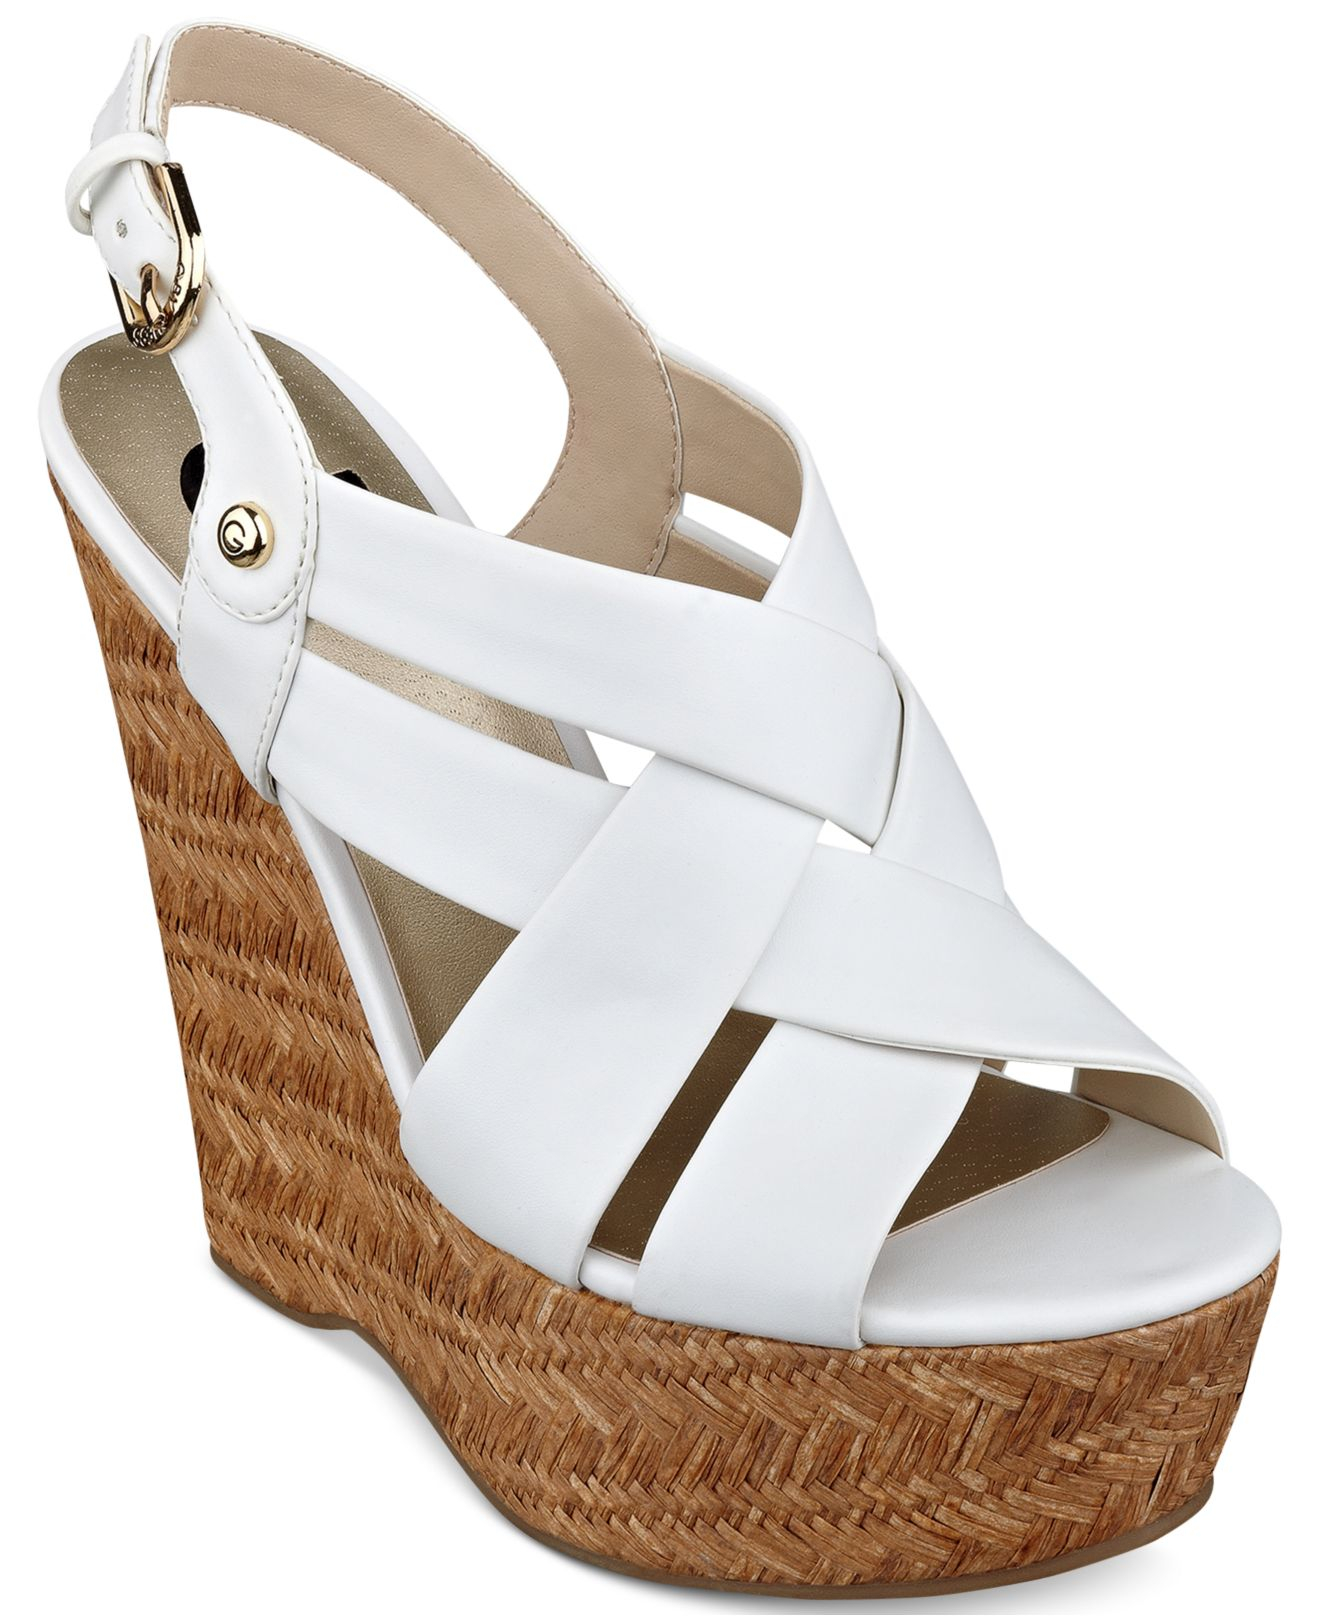 c2e041593556 Gallery. Previously sold at  Macy s · Women s White Platform Wedges ...